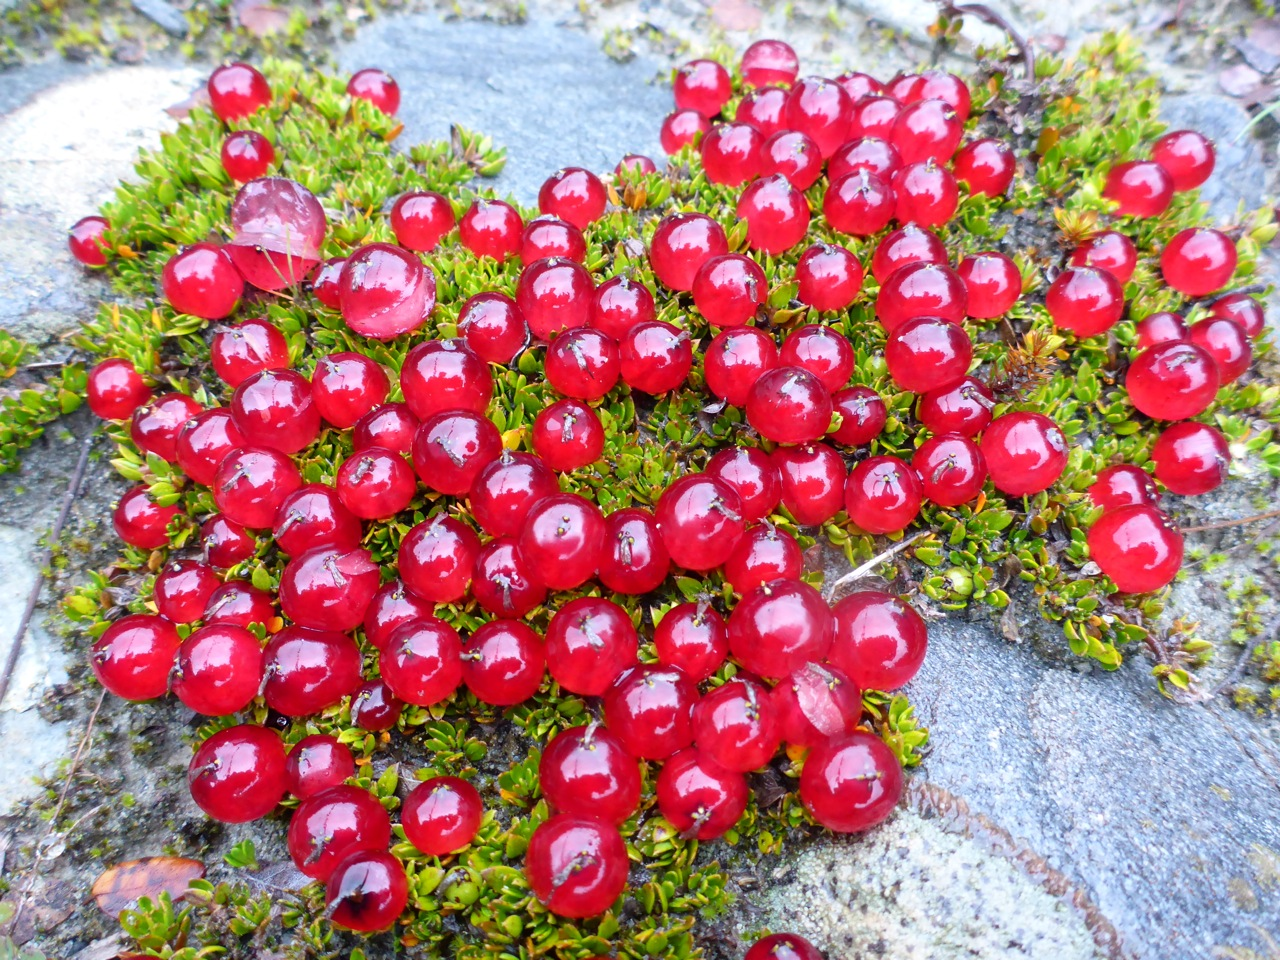 Berries on the ground.. Breandan??